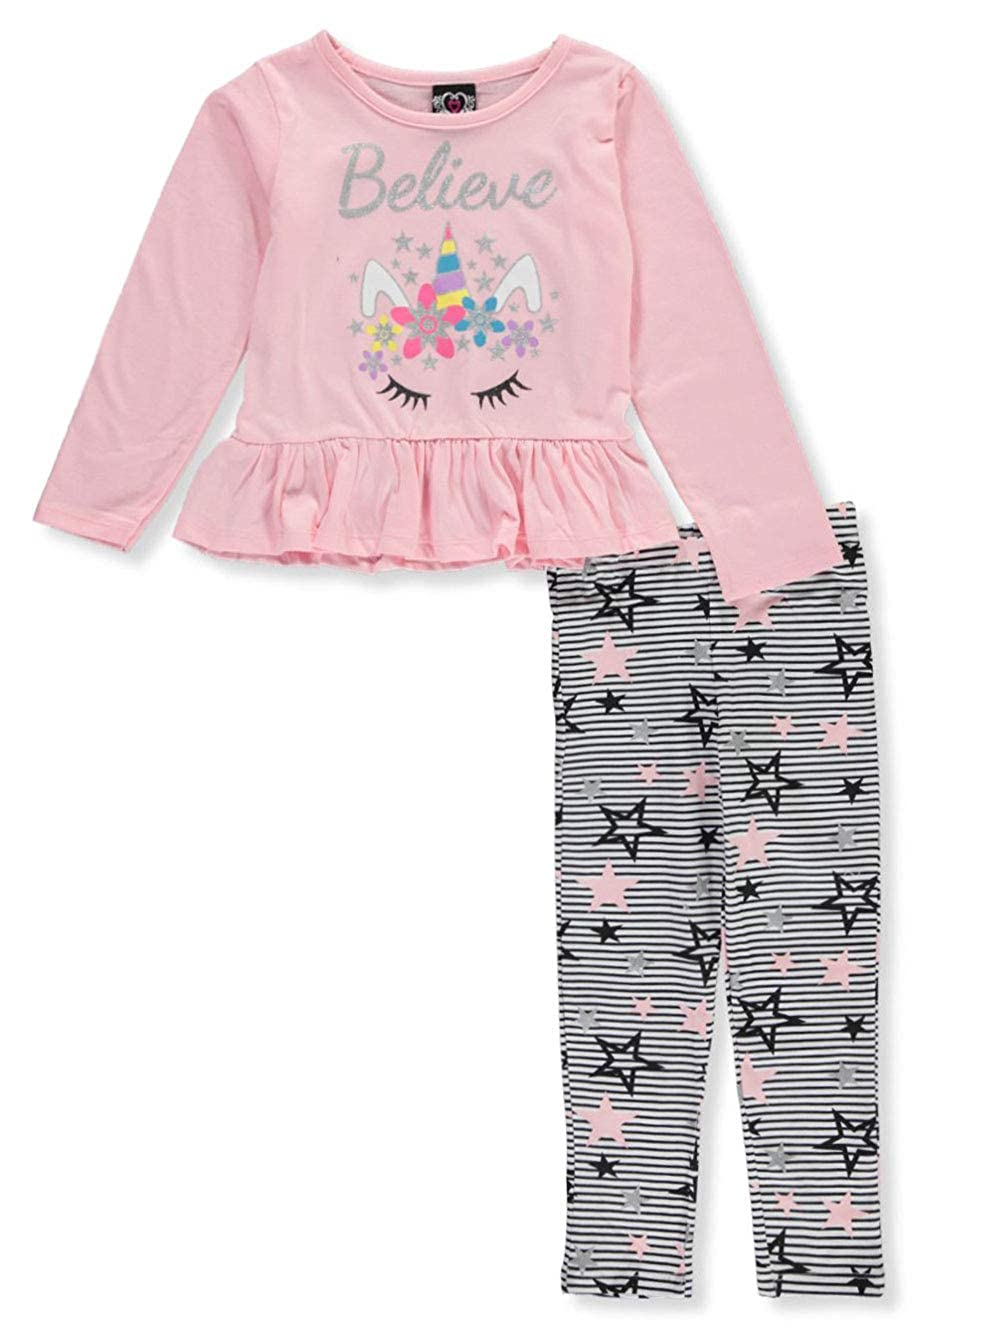 Real Love Girls Believe in Unicorns 2-Piece Leggings Set Outfit